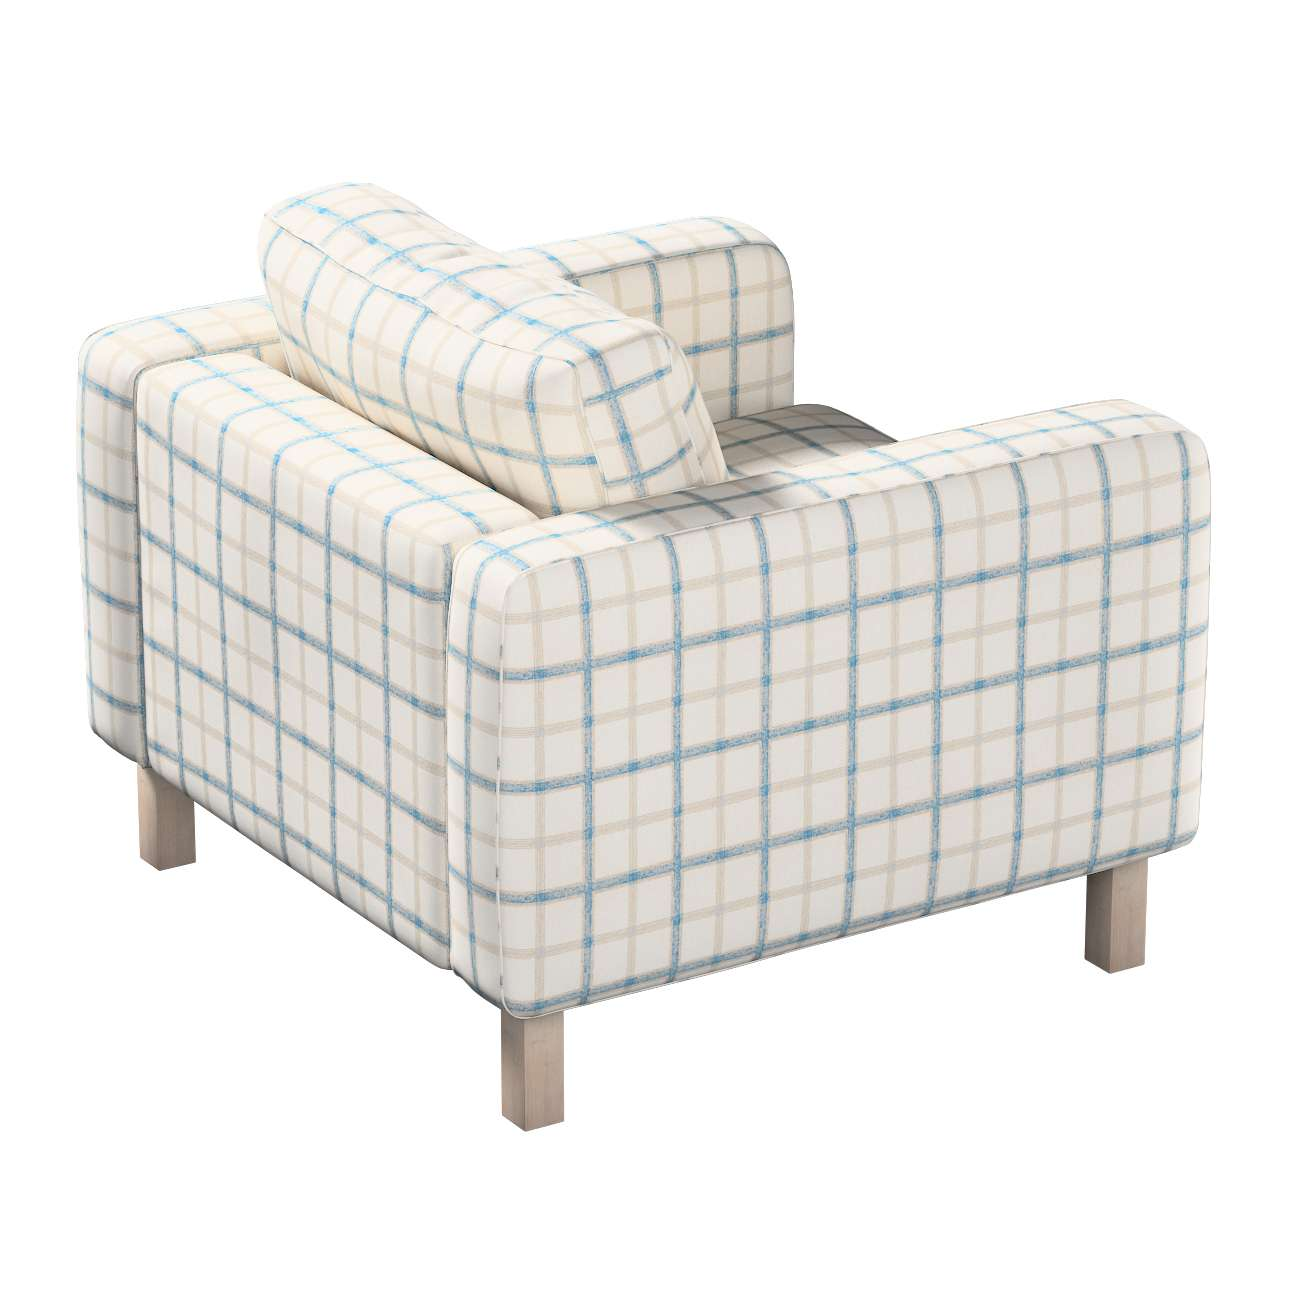 Karlstad armchair cover in collection Avinon, fabric: 131-66